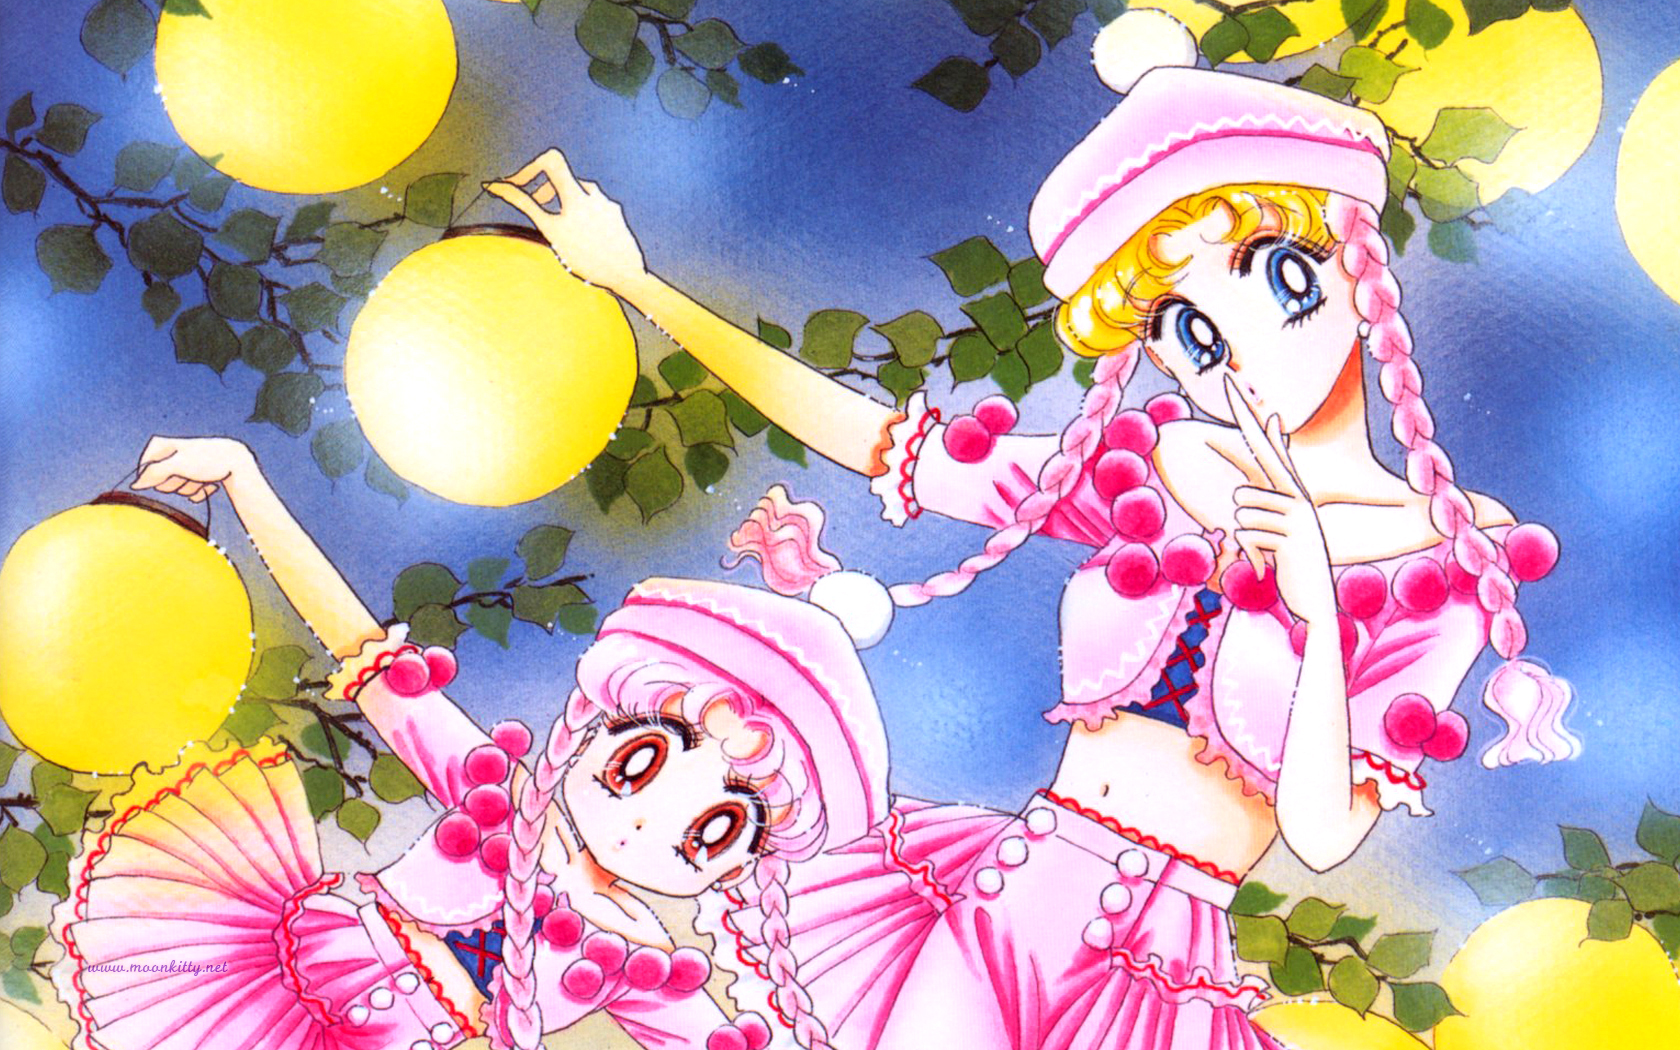 Moonkitty Net Sailor Moon Wallpapers Widescreen Page 3